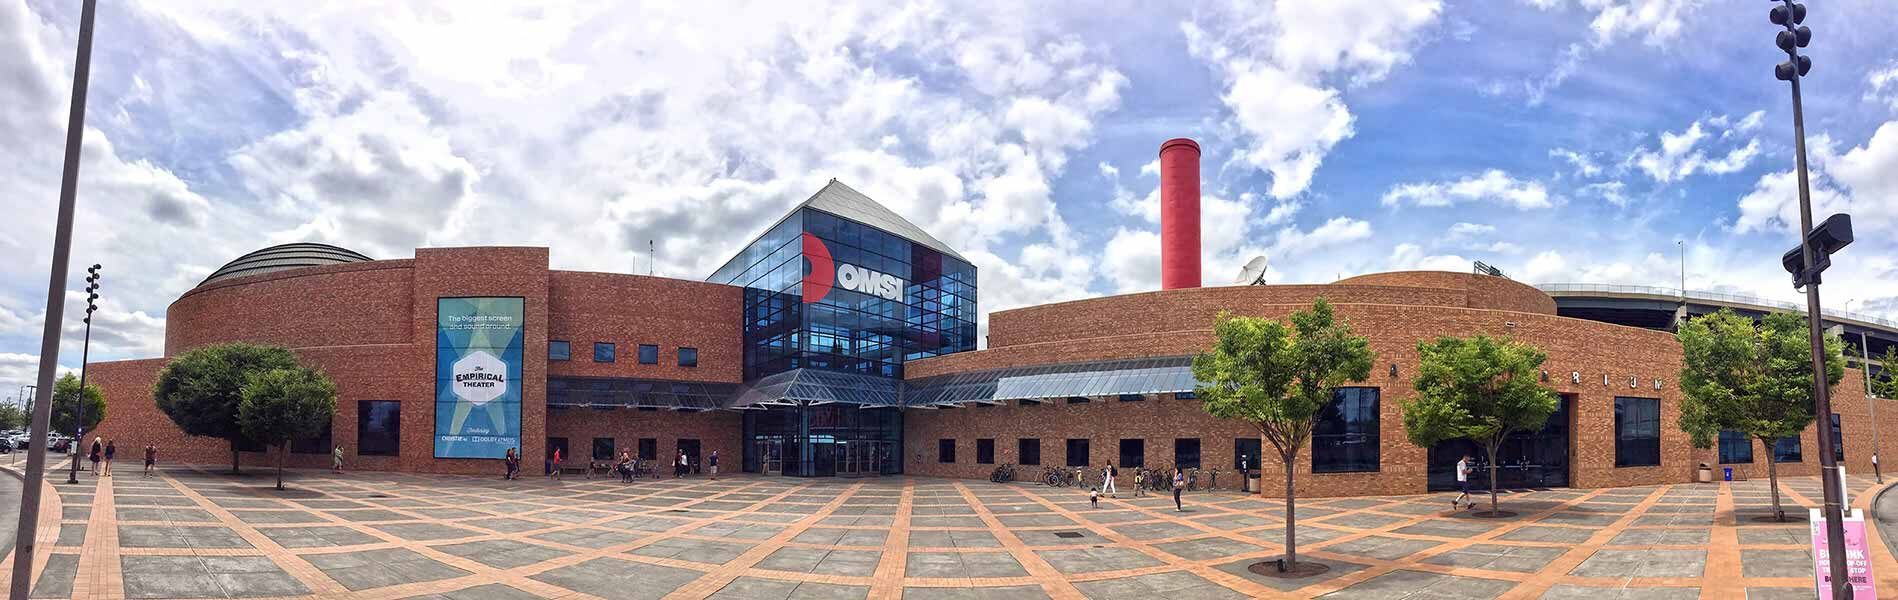 OMSI building and front plaza